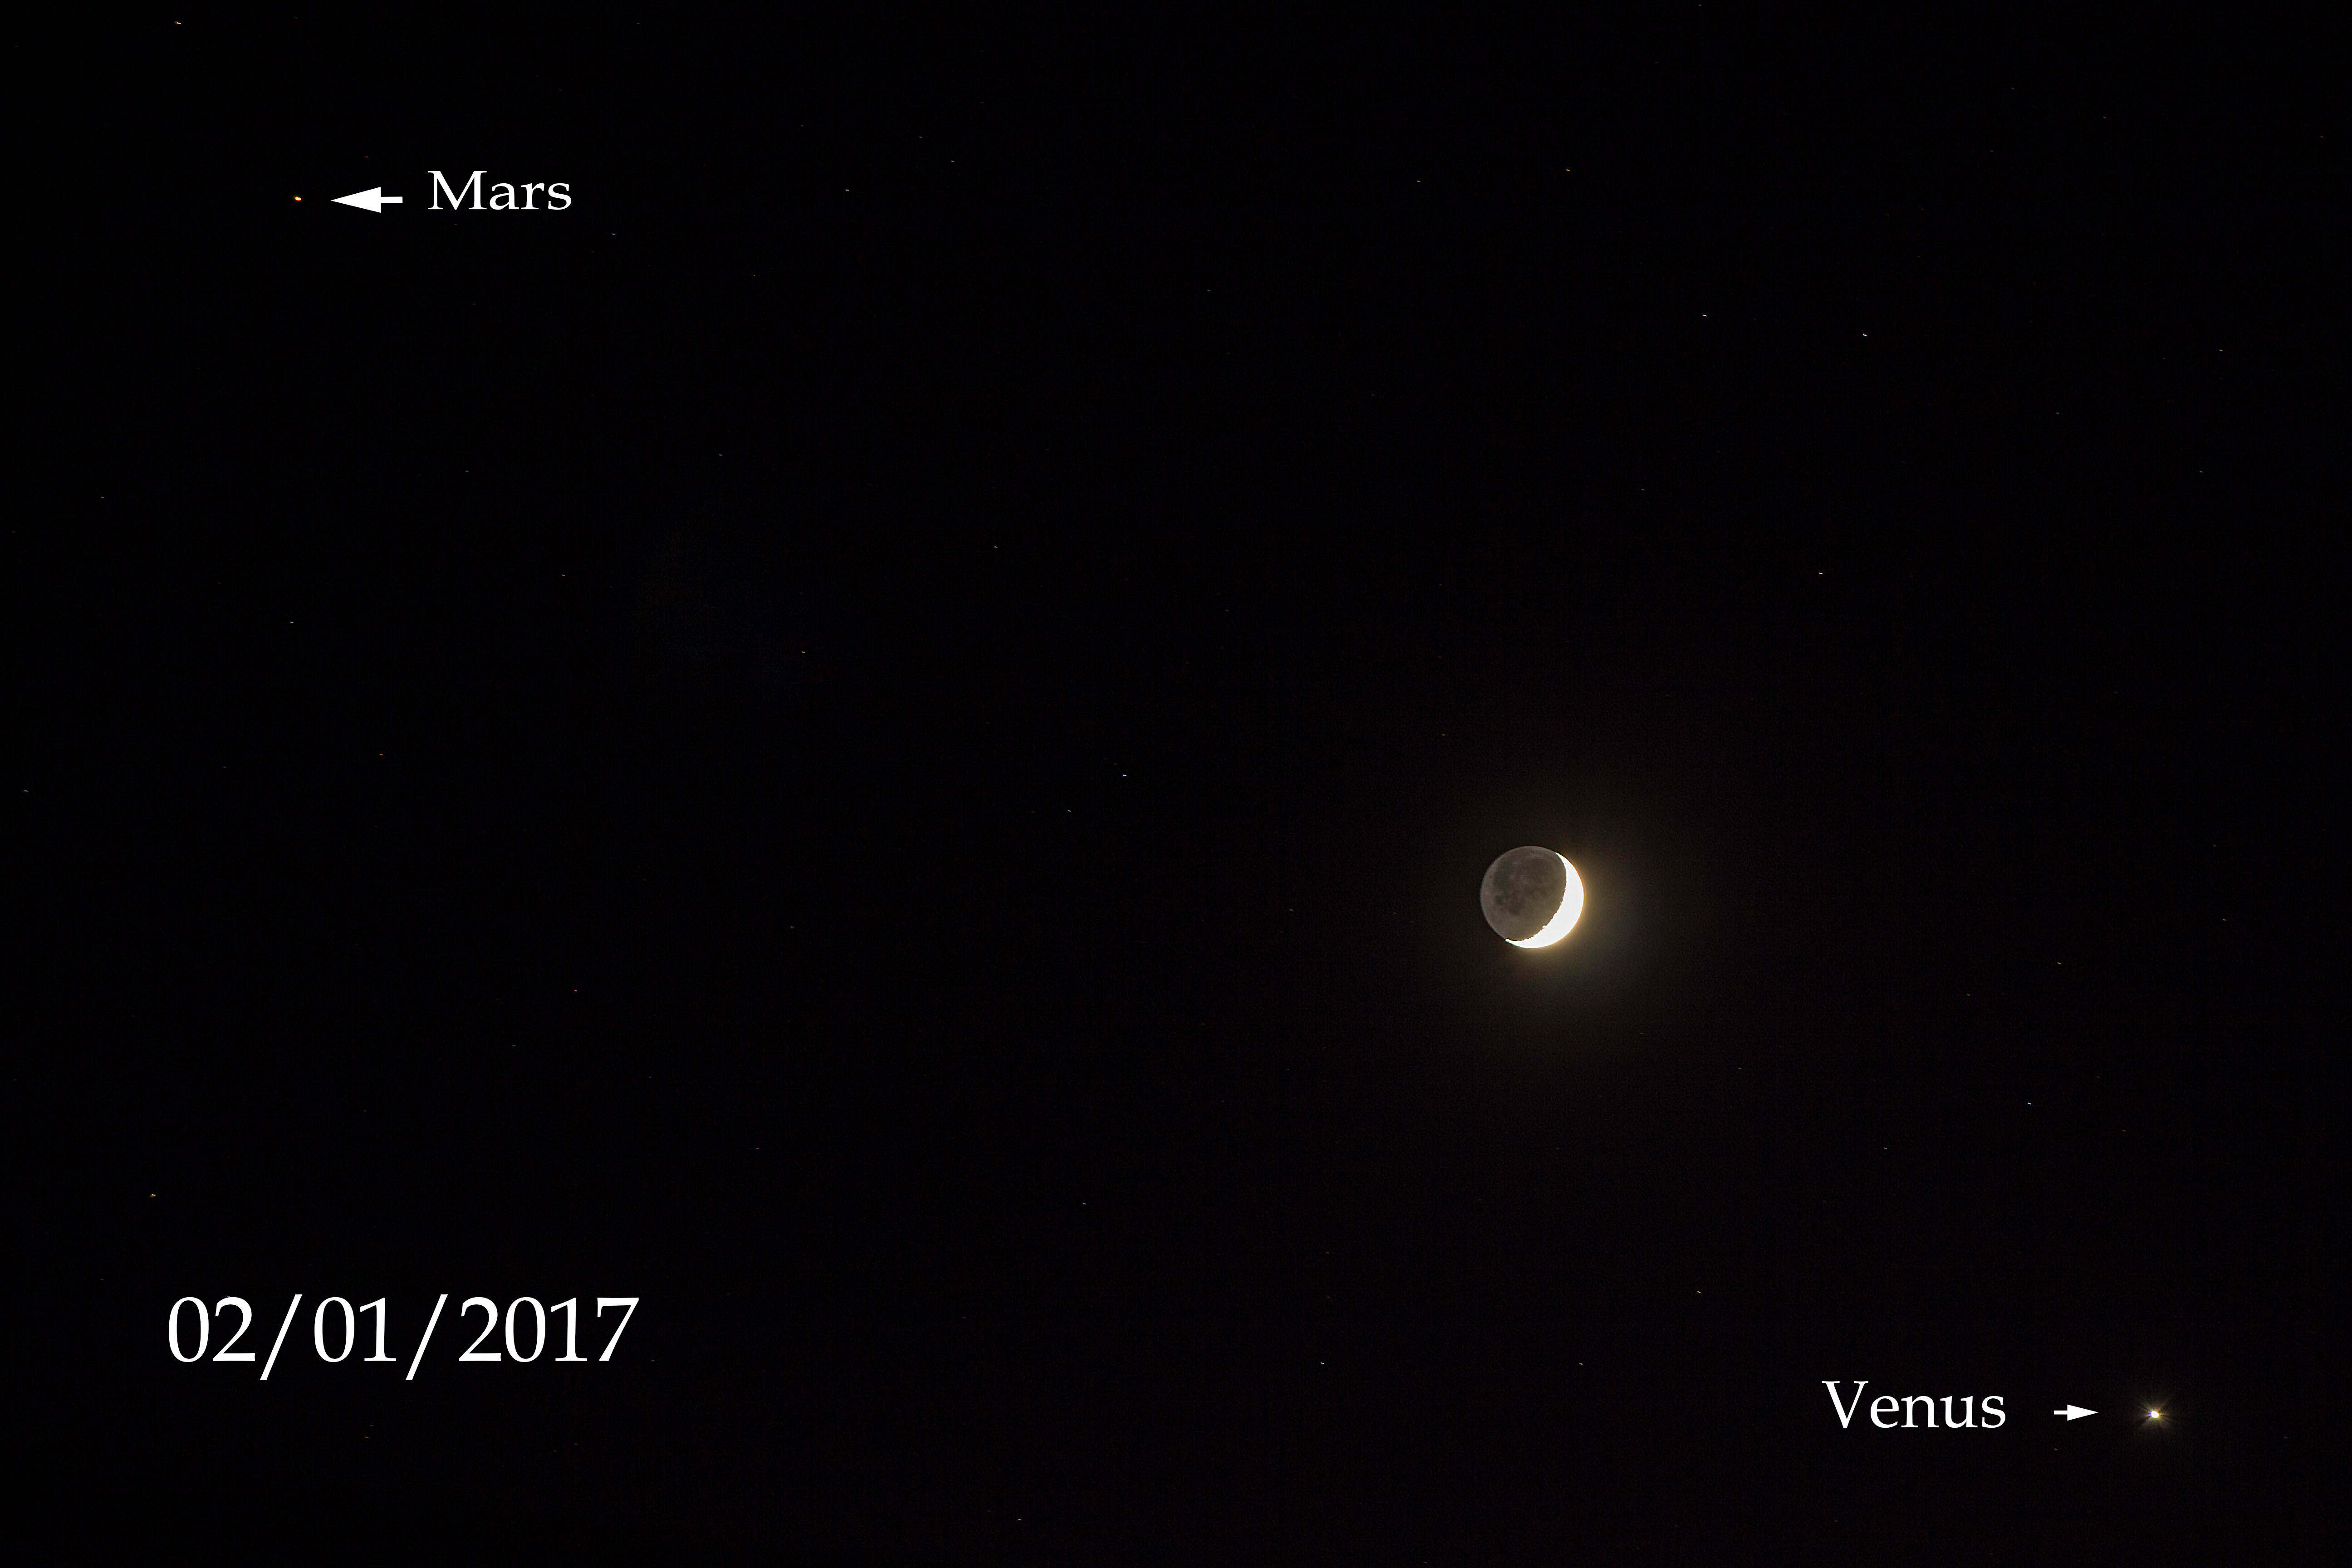 Conjunction of Moon, Venus and Mars by Andy Heenan. 2nd January 2017. Canon EOS 600D f/4.5, 4 seconds at ISO-100